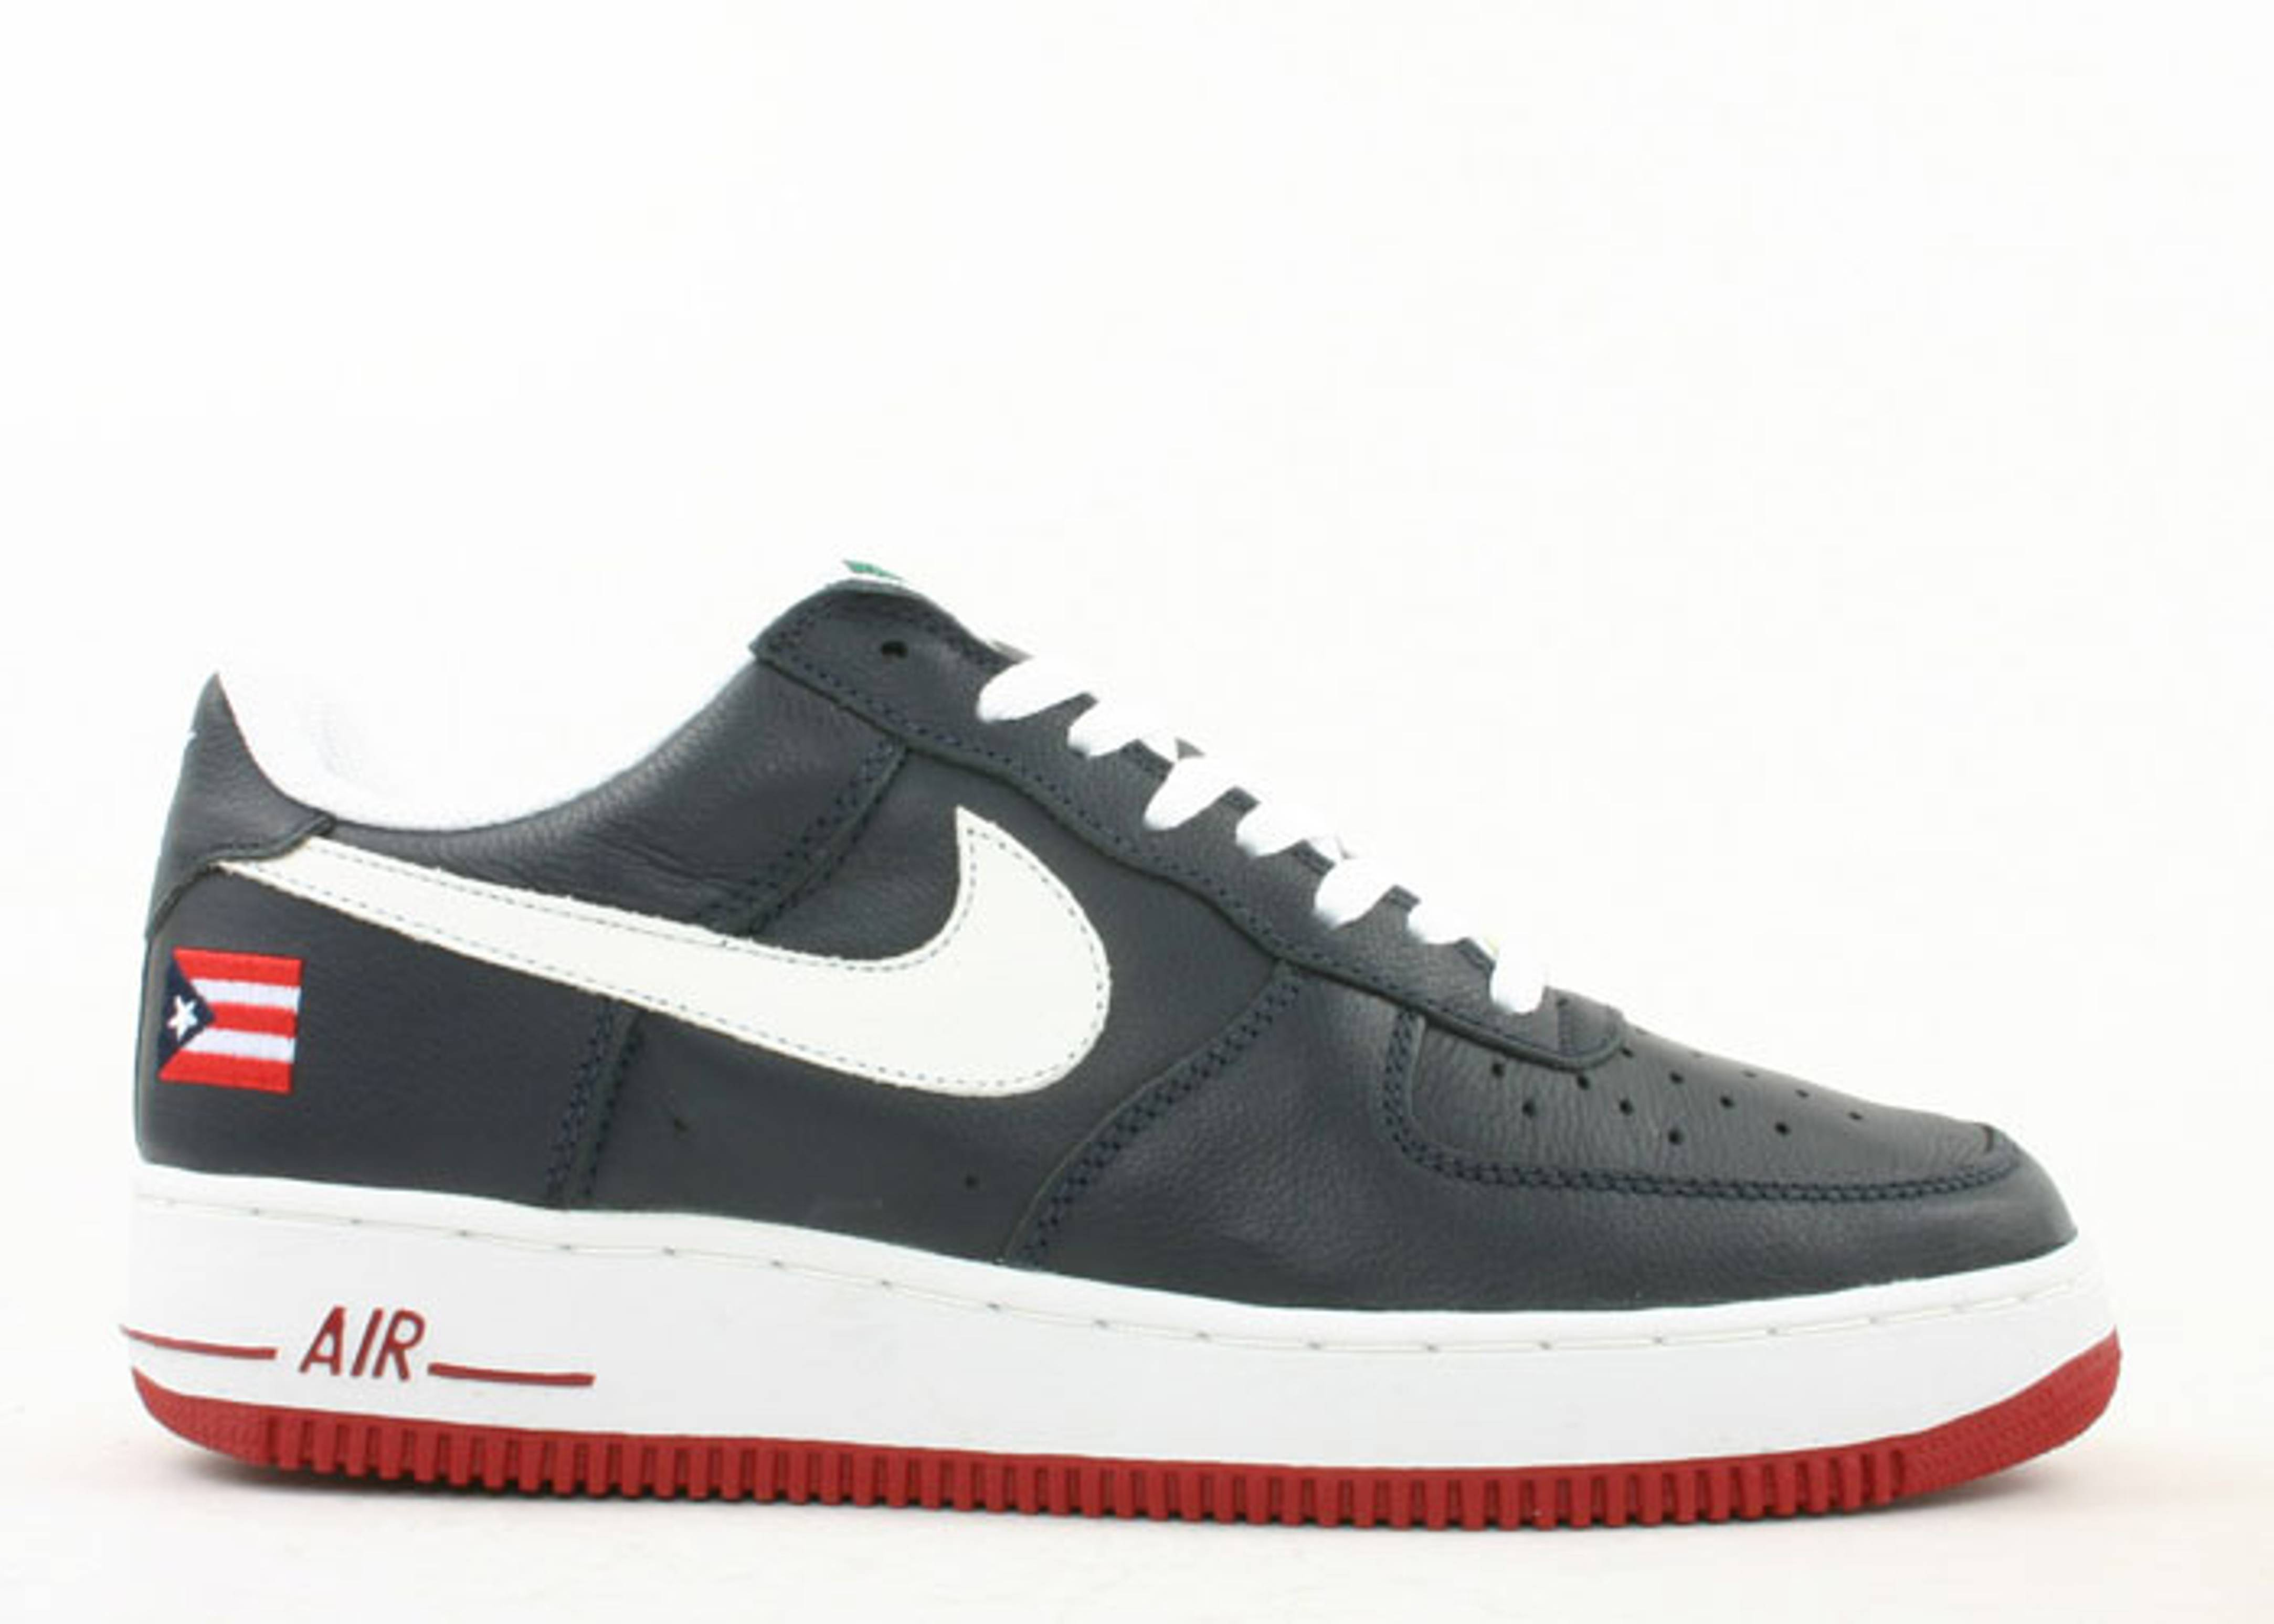 Nike Air Force 1 Chaussures De Basket-ball Université Bleu / Blanc / Obsidienne